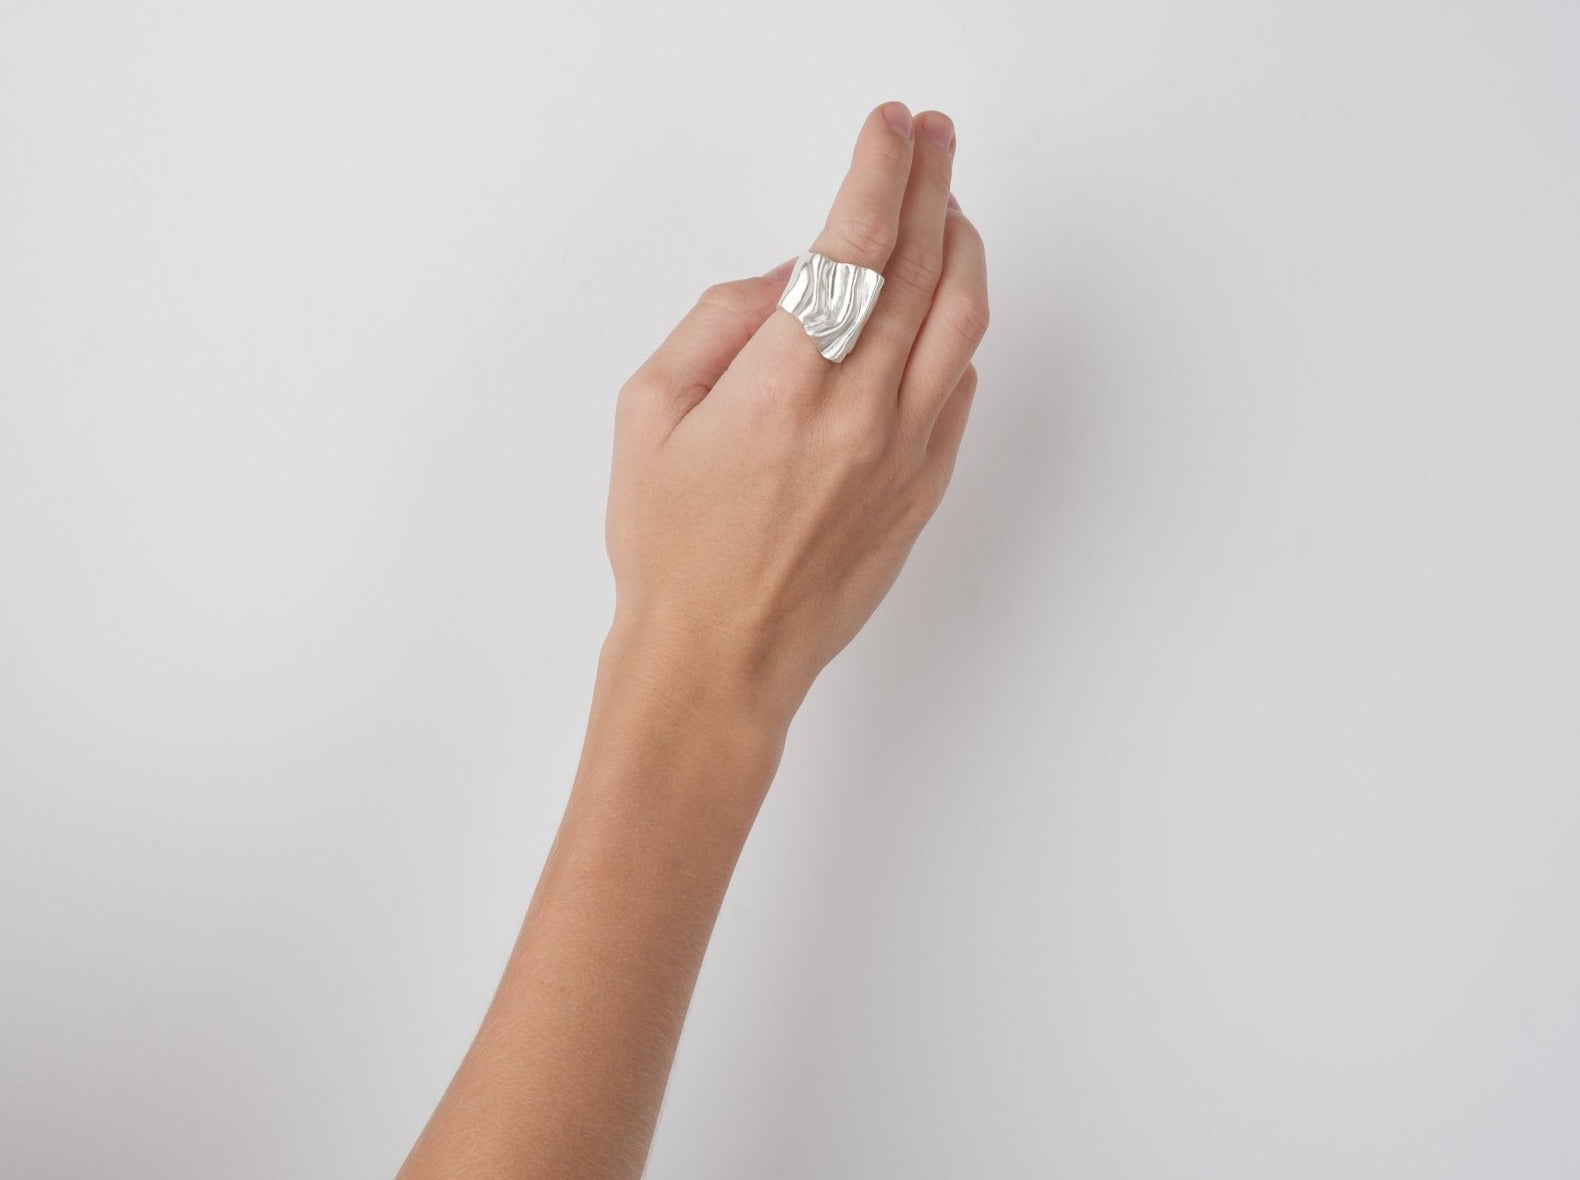 The Biomorph Silver Ring